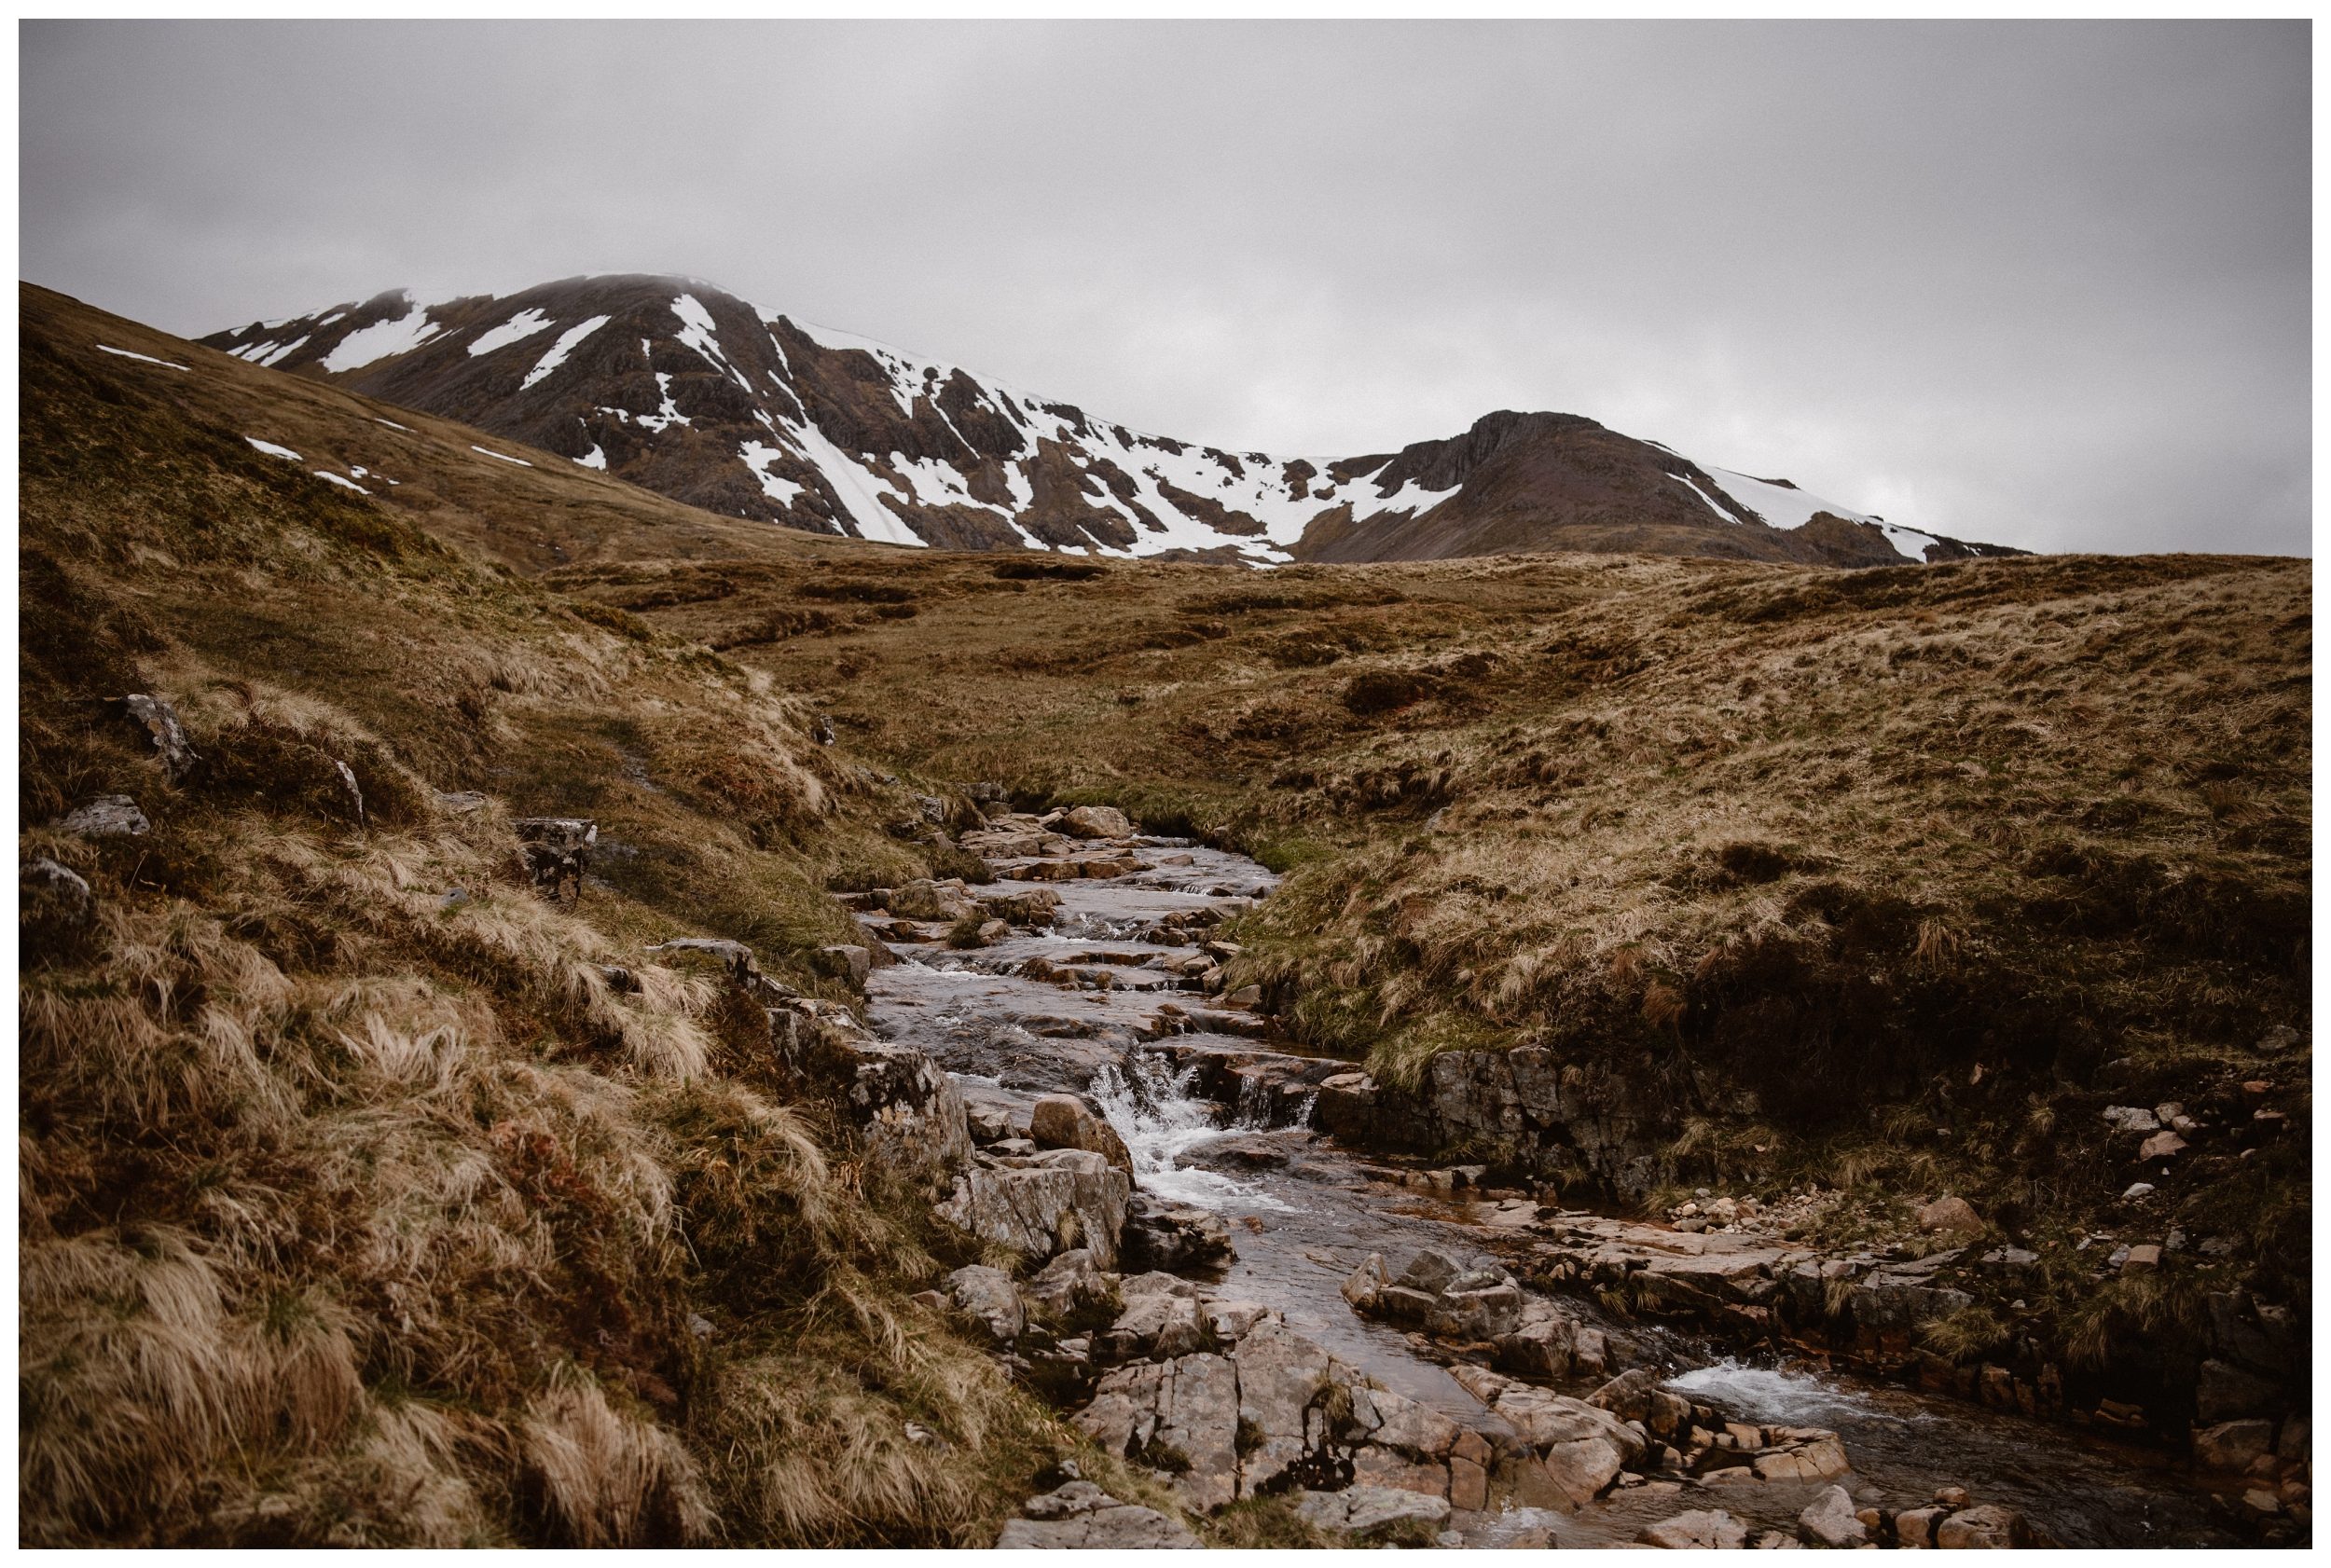 A river runs through the hills of the Scottish Highlands outside Kilchurn Castle, near Loch Awe, Argyll and Bute in Scotland. Photo by Maddie Mae, Adventure Instead.